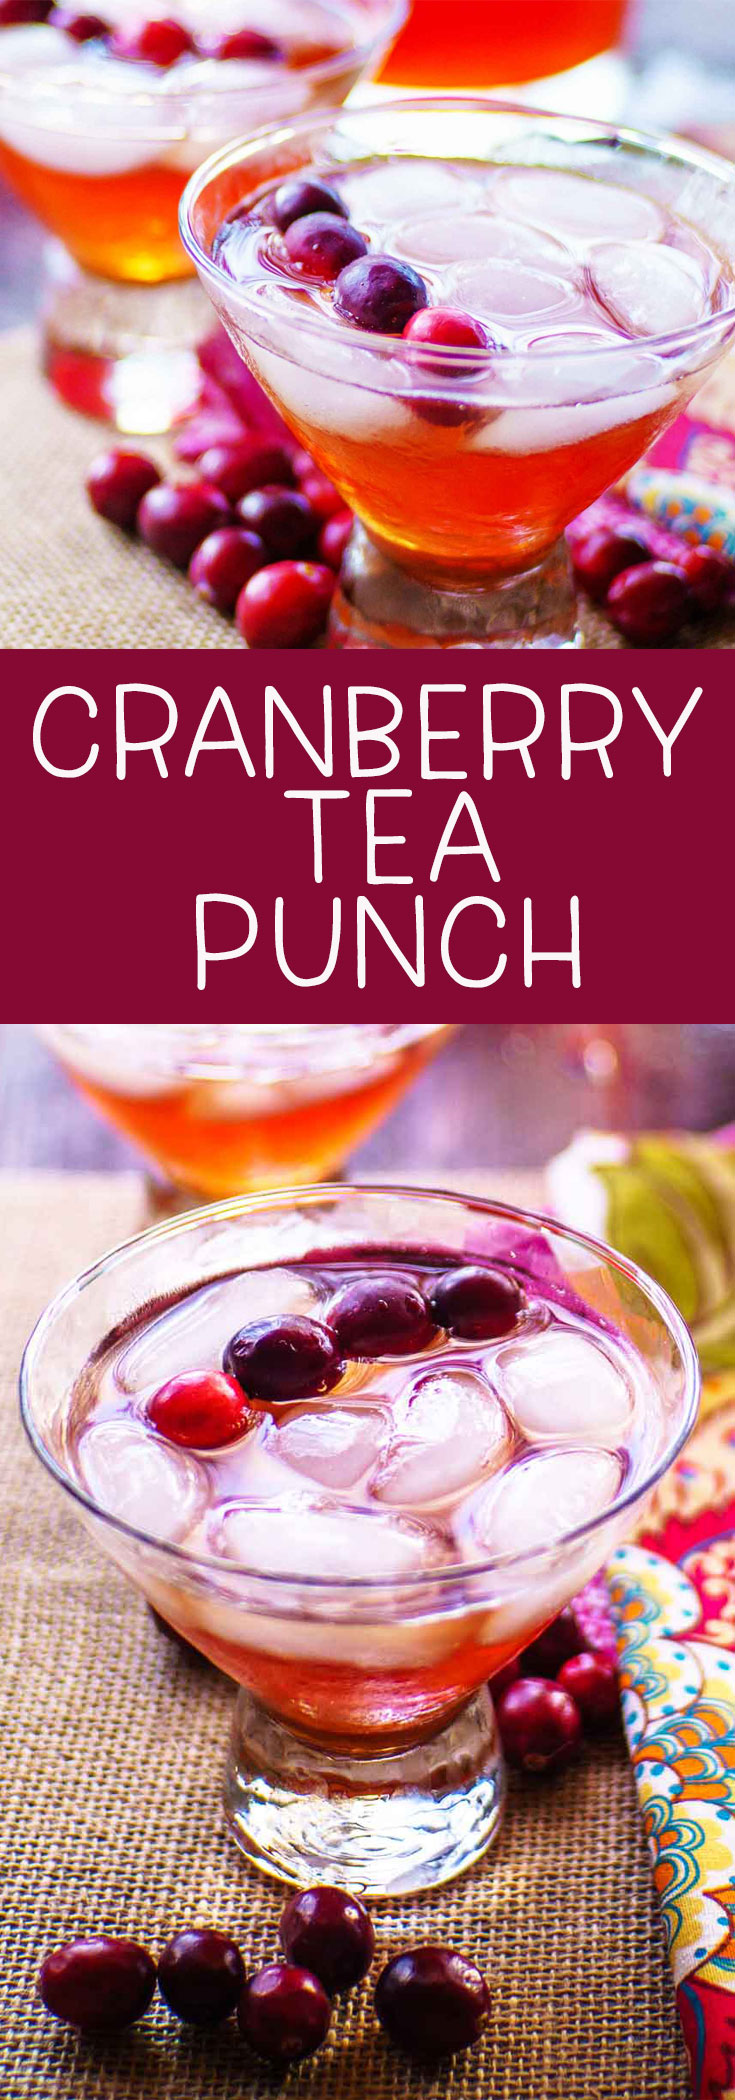 Cranberry tea punch is a perfect holiday beverage. It's a great mocktail full of Milo's sweet tea, cranberry cherry juice, and soda for bubbles. #ad @MilosTea #PassTheMilos #Pmedia via @mrsmajorhoff